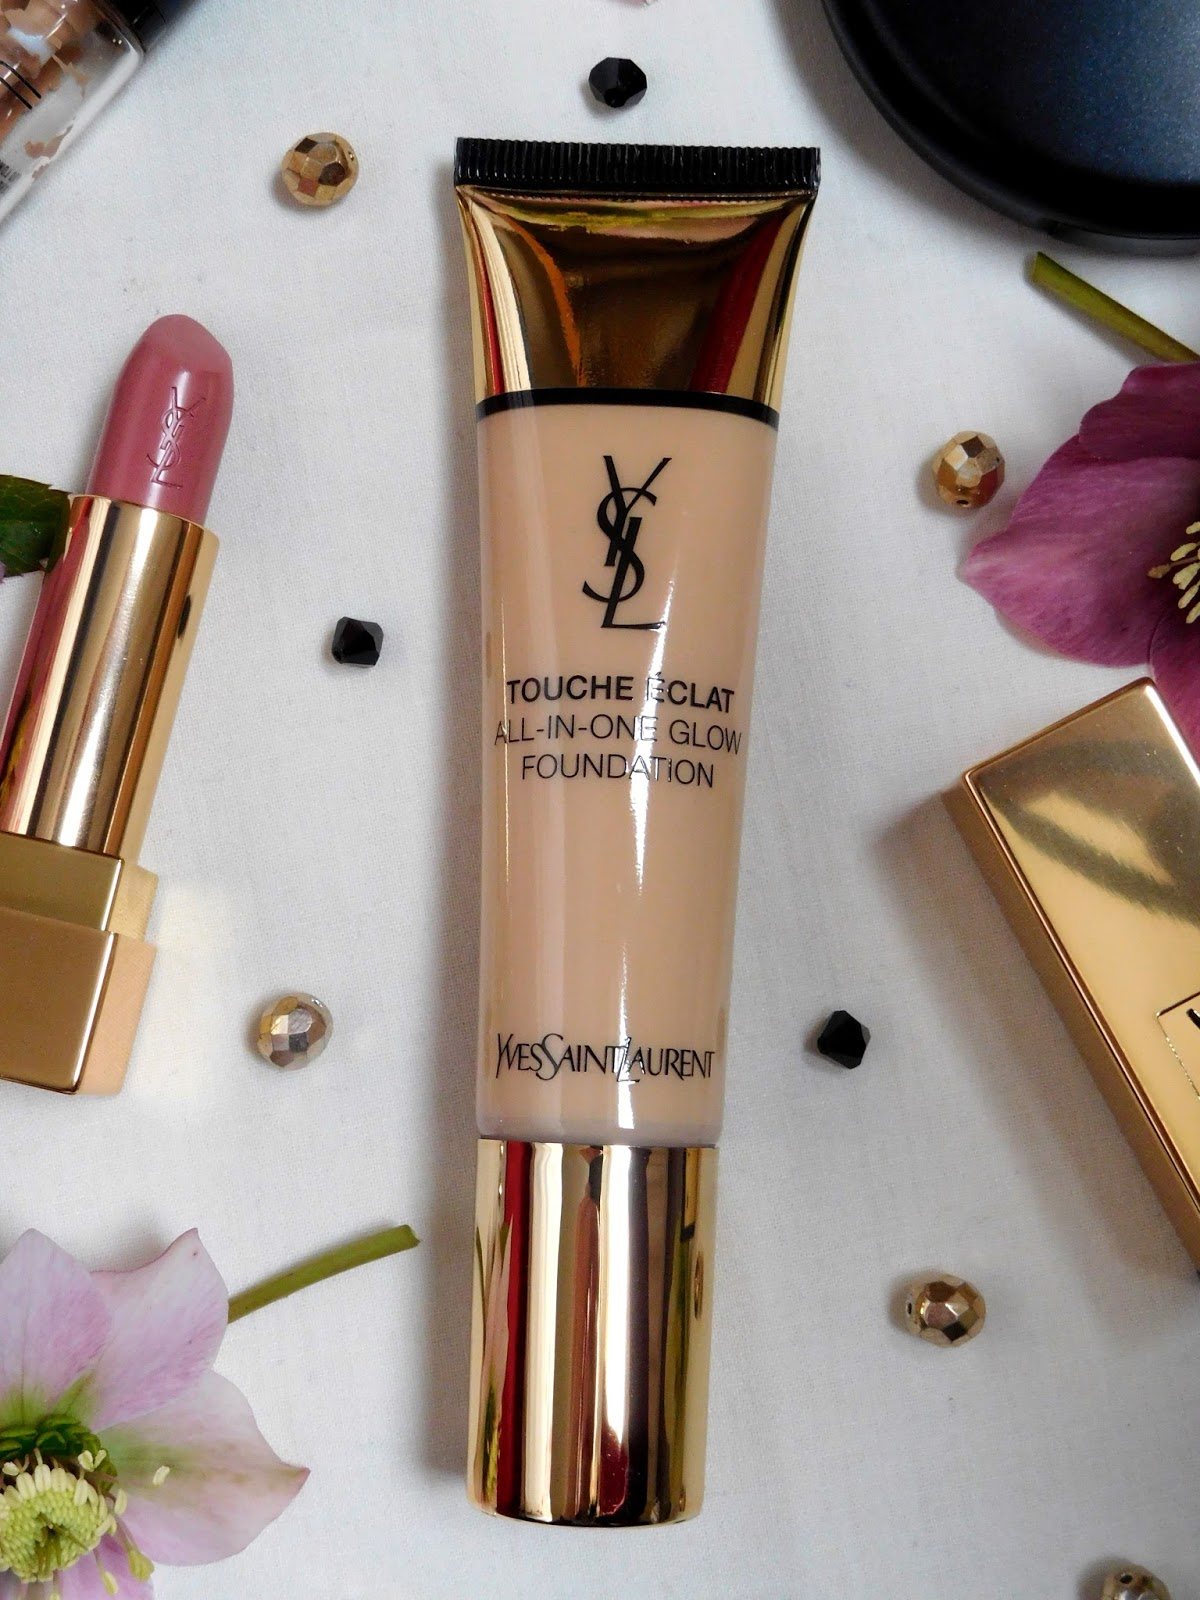 ysl touche eclat all in one glow review